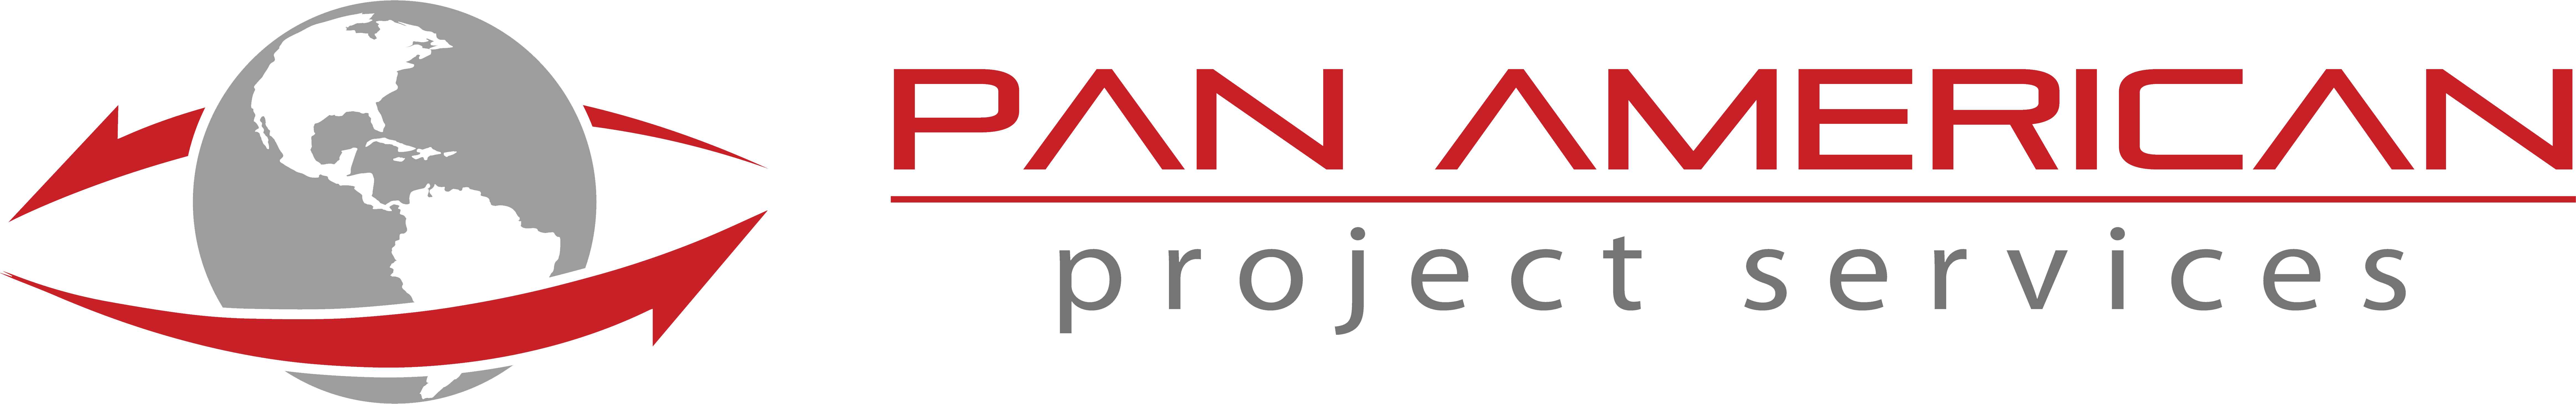 Triol Pan American Project Services Inc.